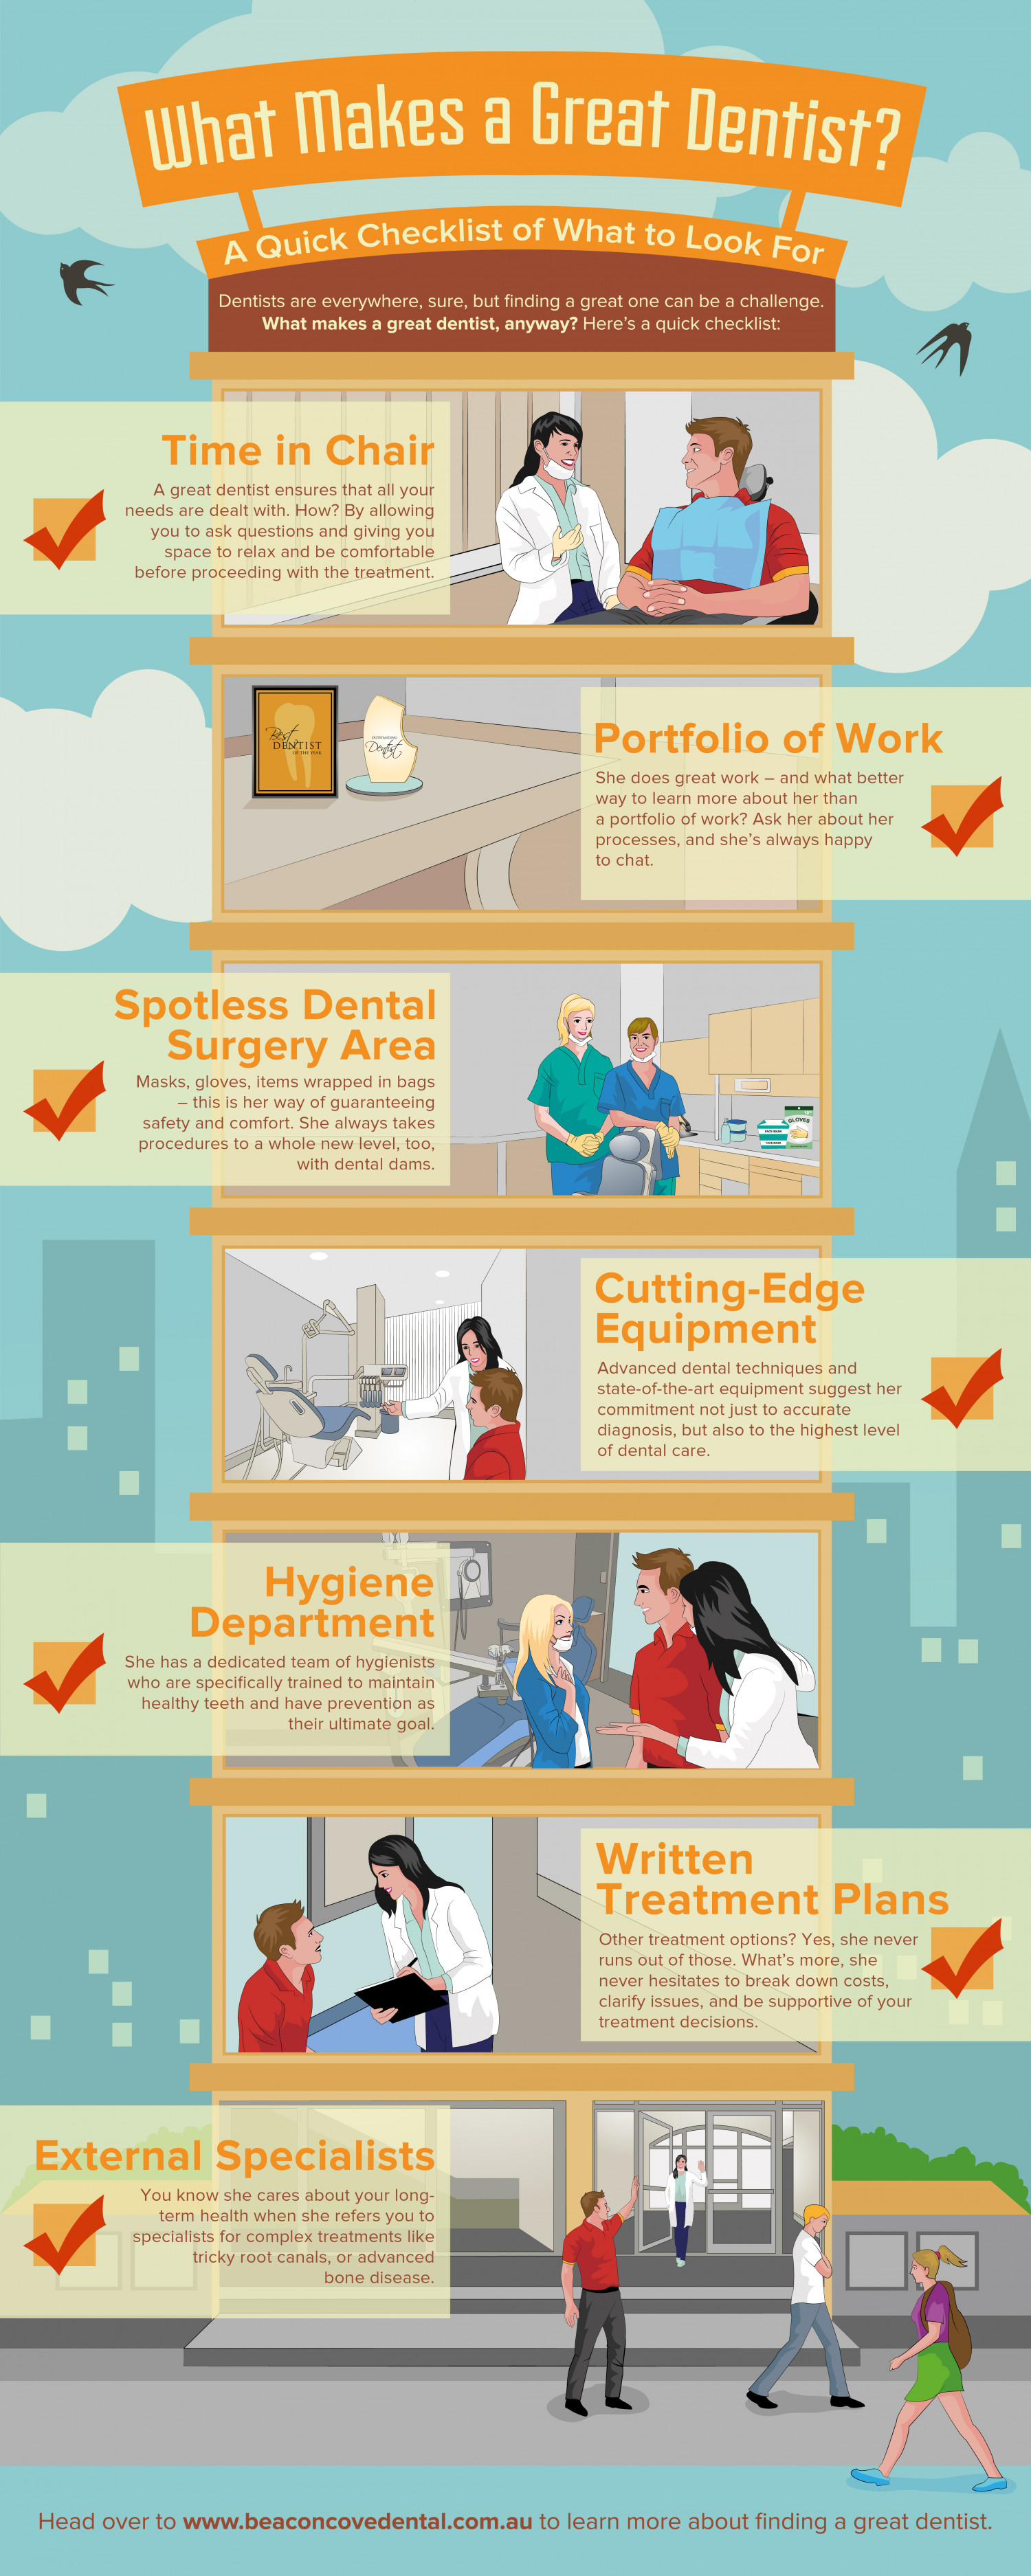 What Makes a Great Dentist Infographic